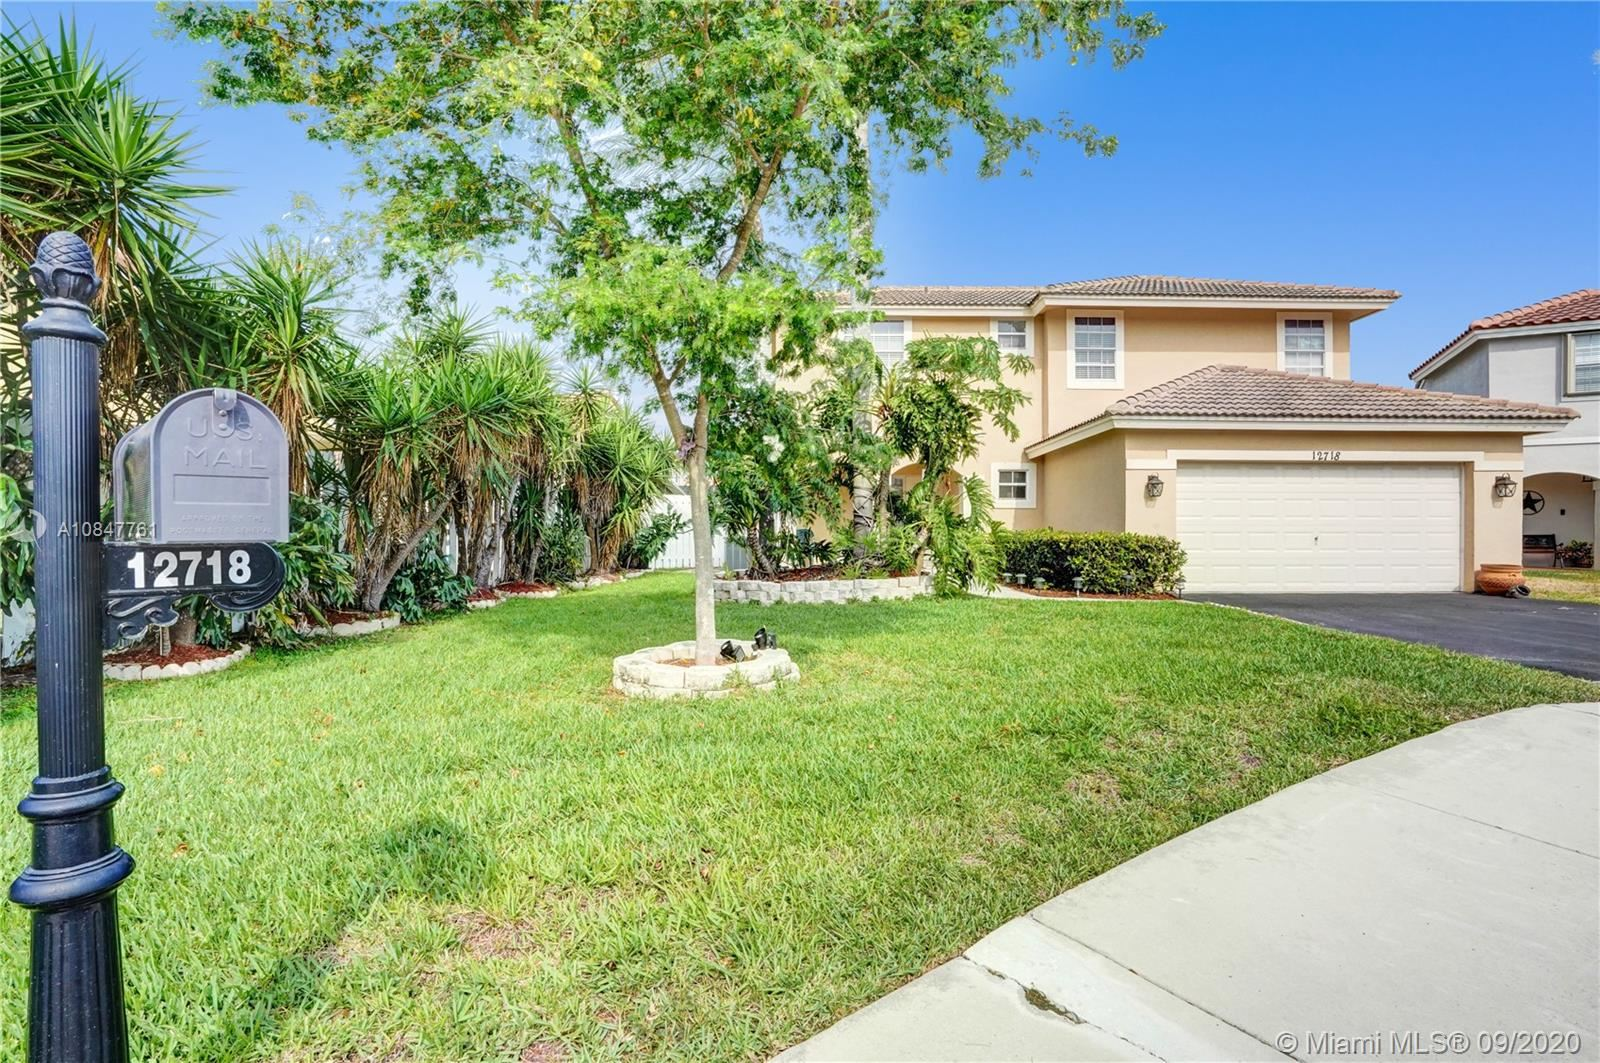 12718 NW 11th Pl, Sunrise, FL 33323 - #: A10847761